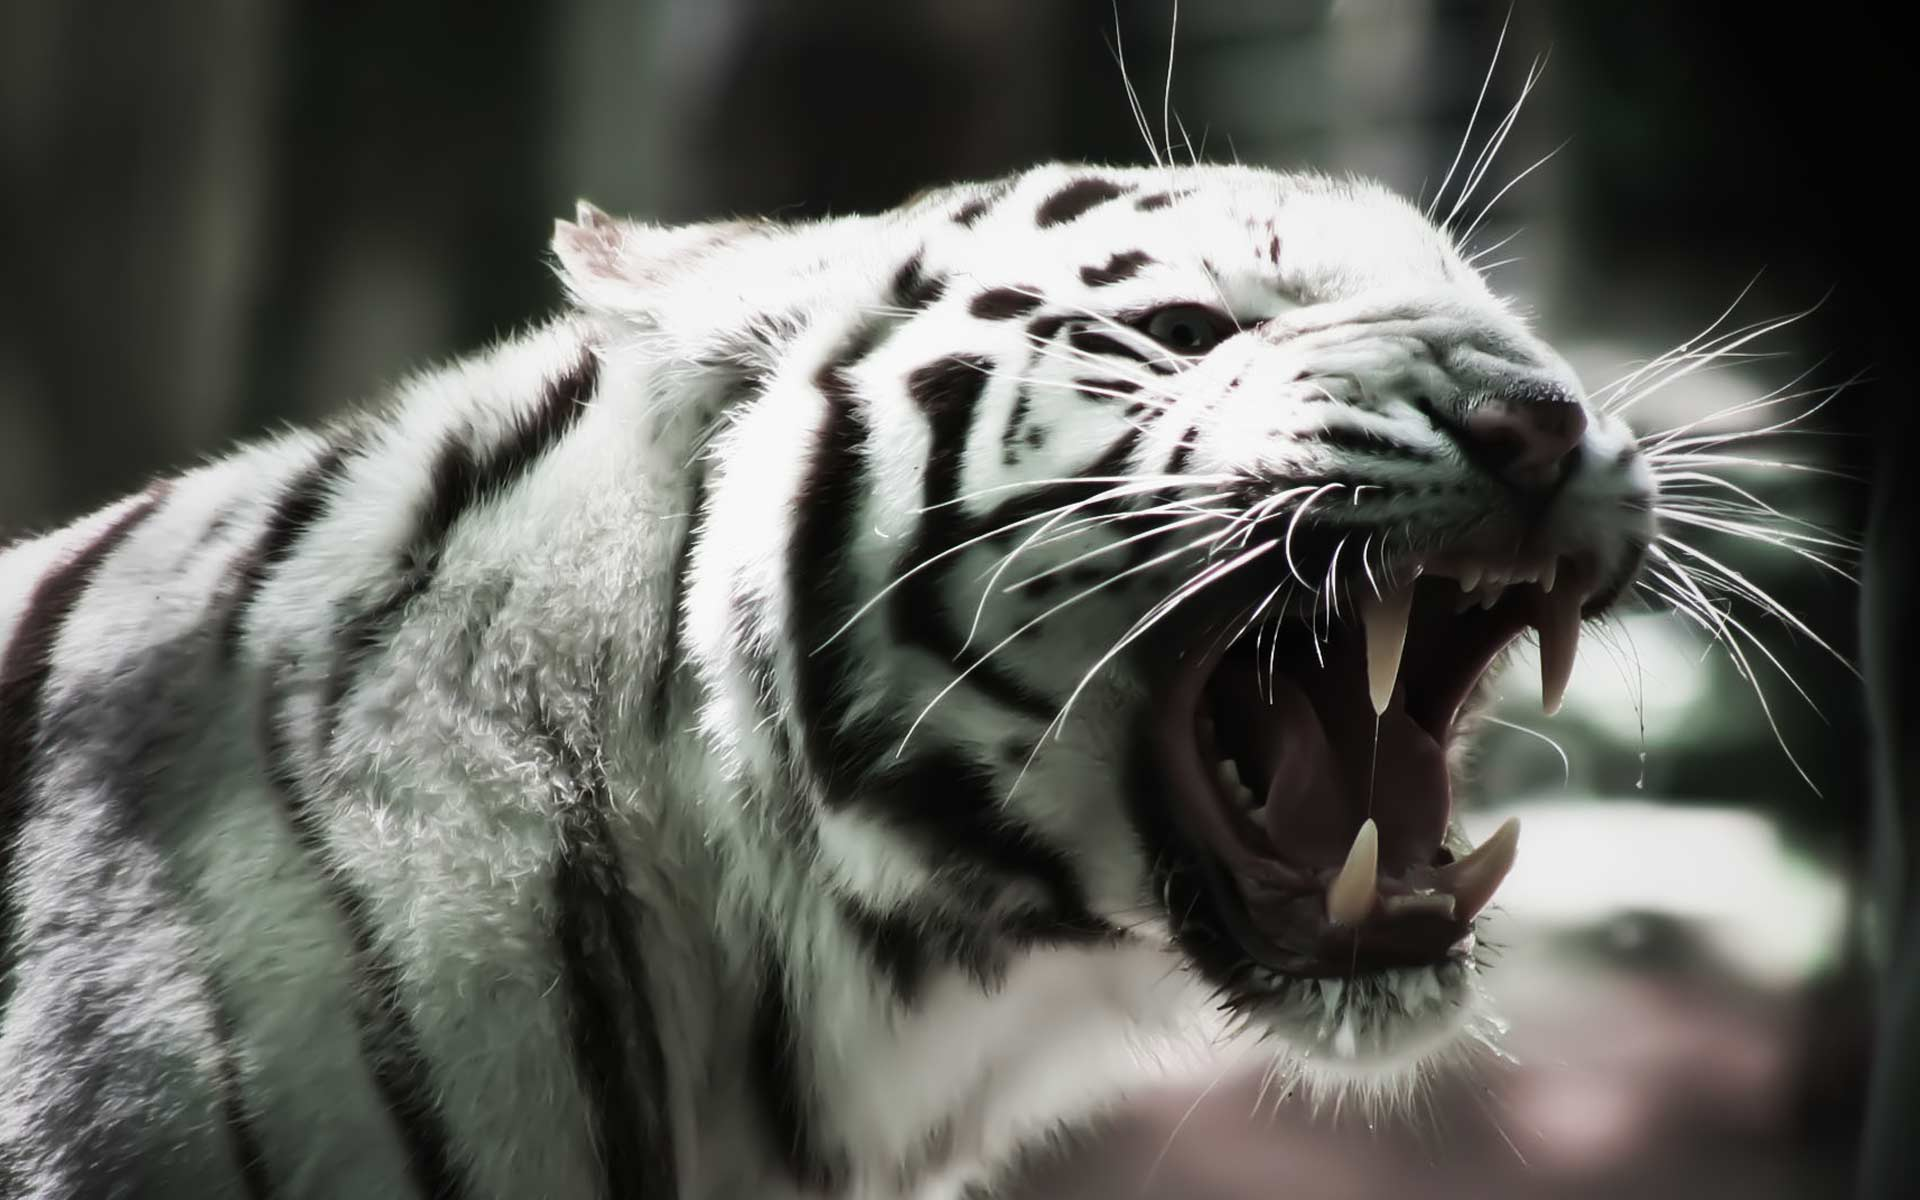 white tiger wallpapers - HD Desktop Wallpapers | 4k HD